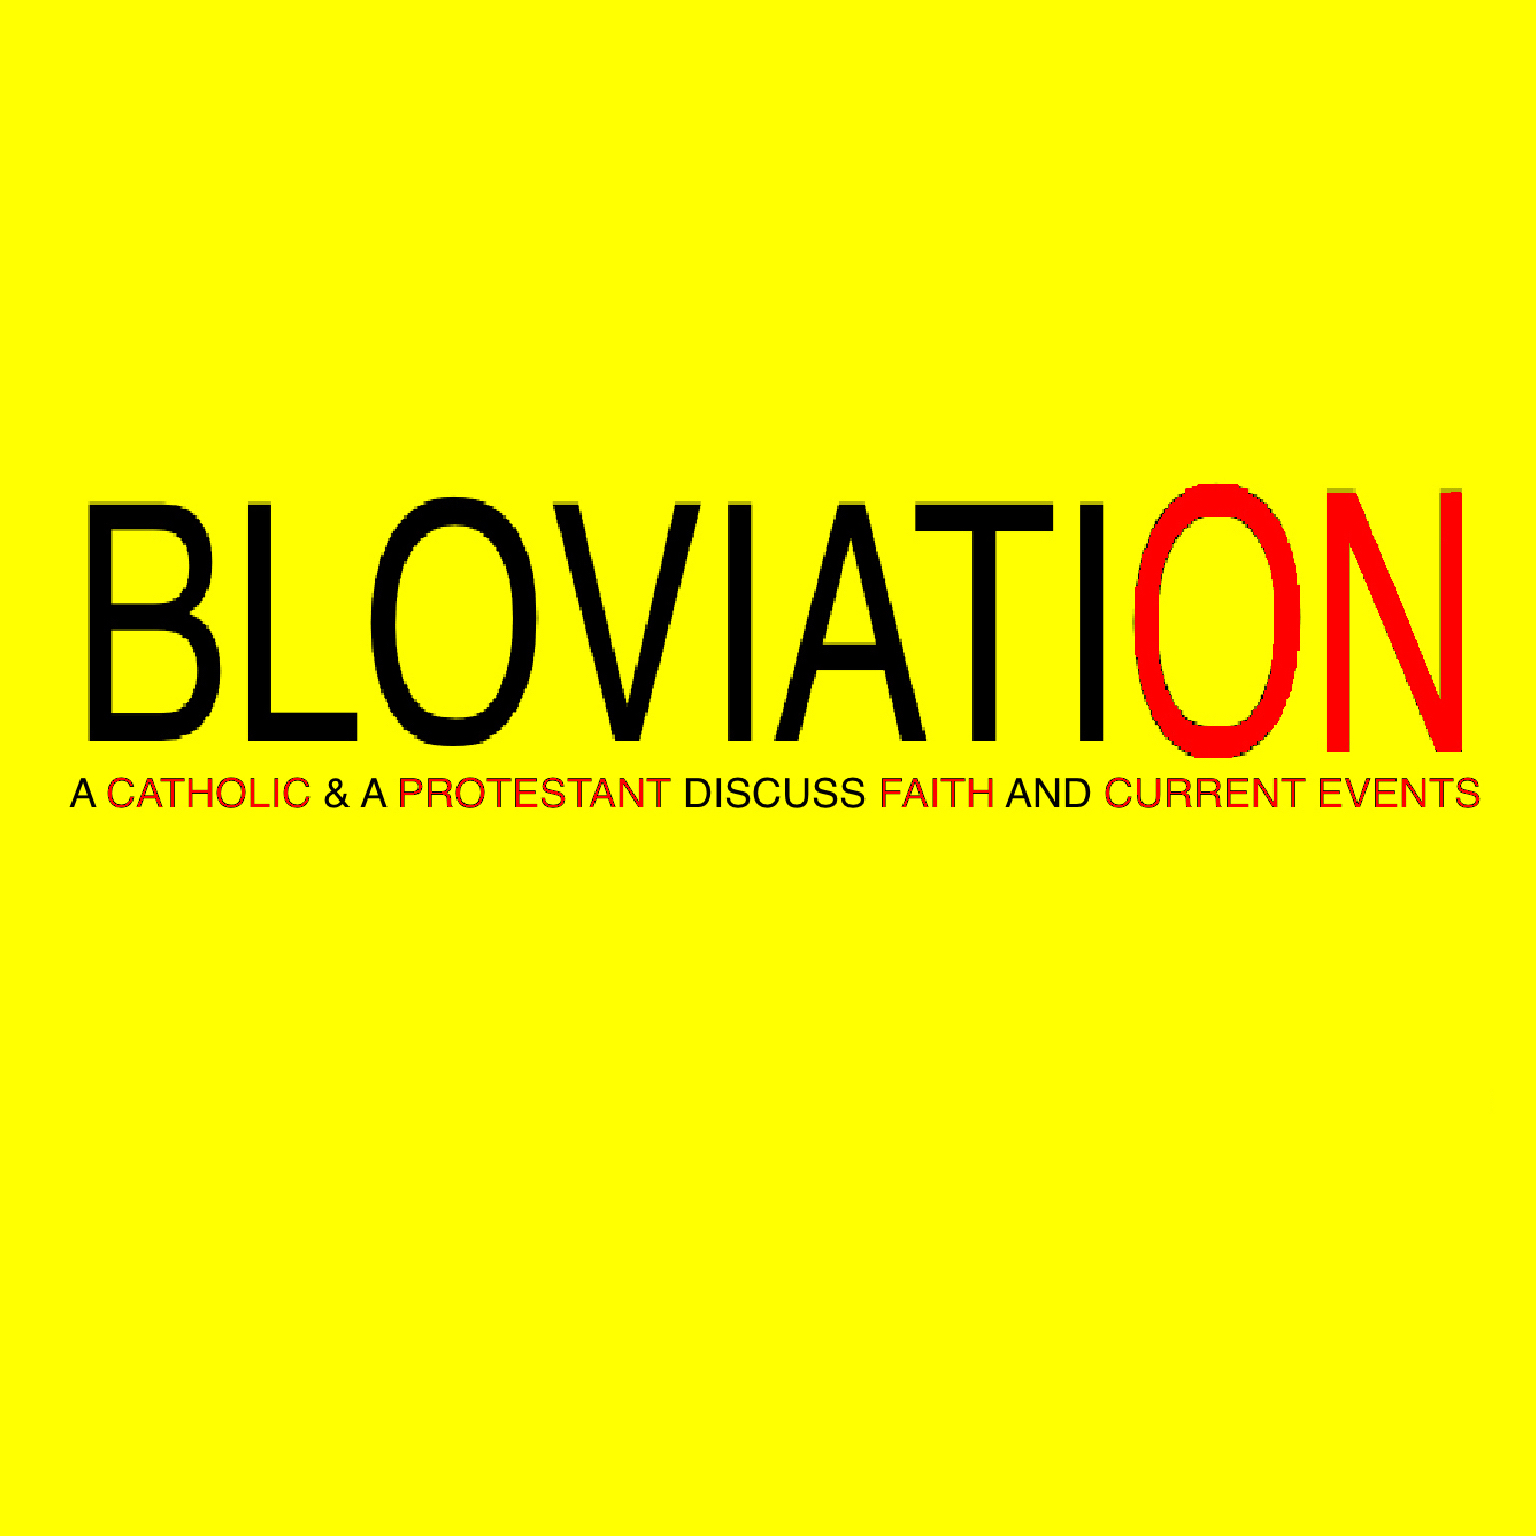 Bloviation